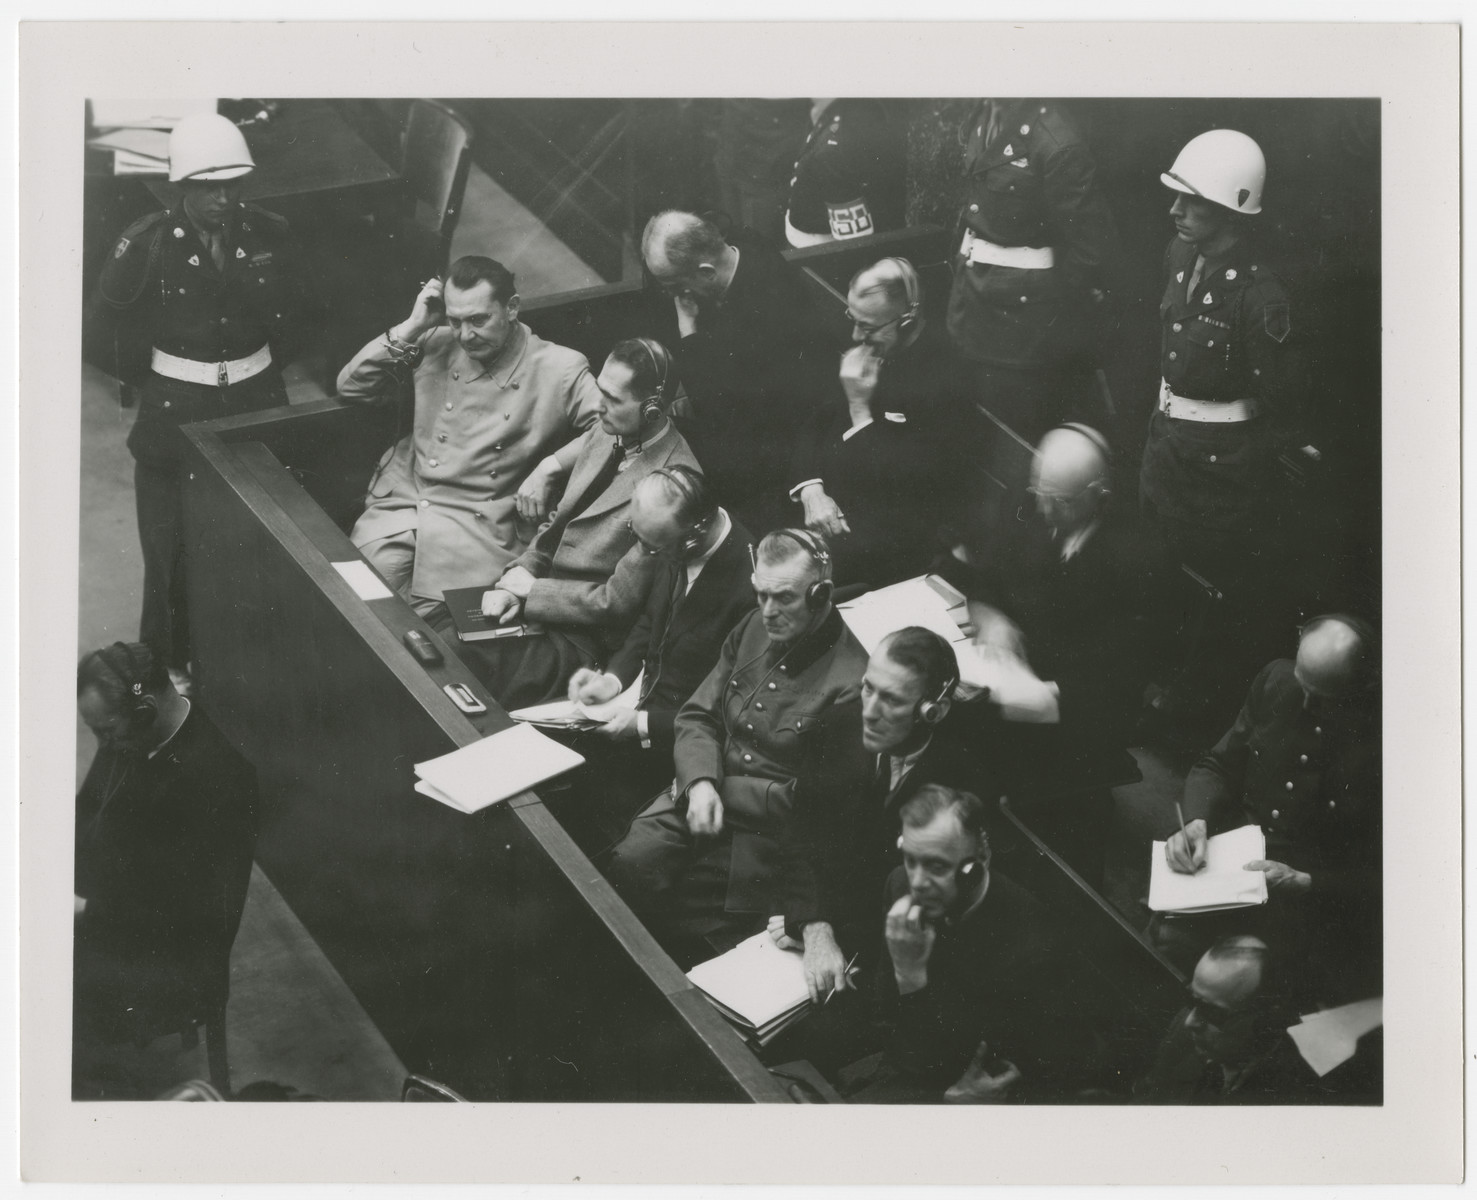 Photograph of the defendant's dock at the International Military Tribune in Nuremberg.   Seated in front row from left to right: Goering, Hess, von Ribbentrop, Keitel, Kaltenbrunner and Rosenberg.